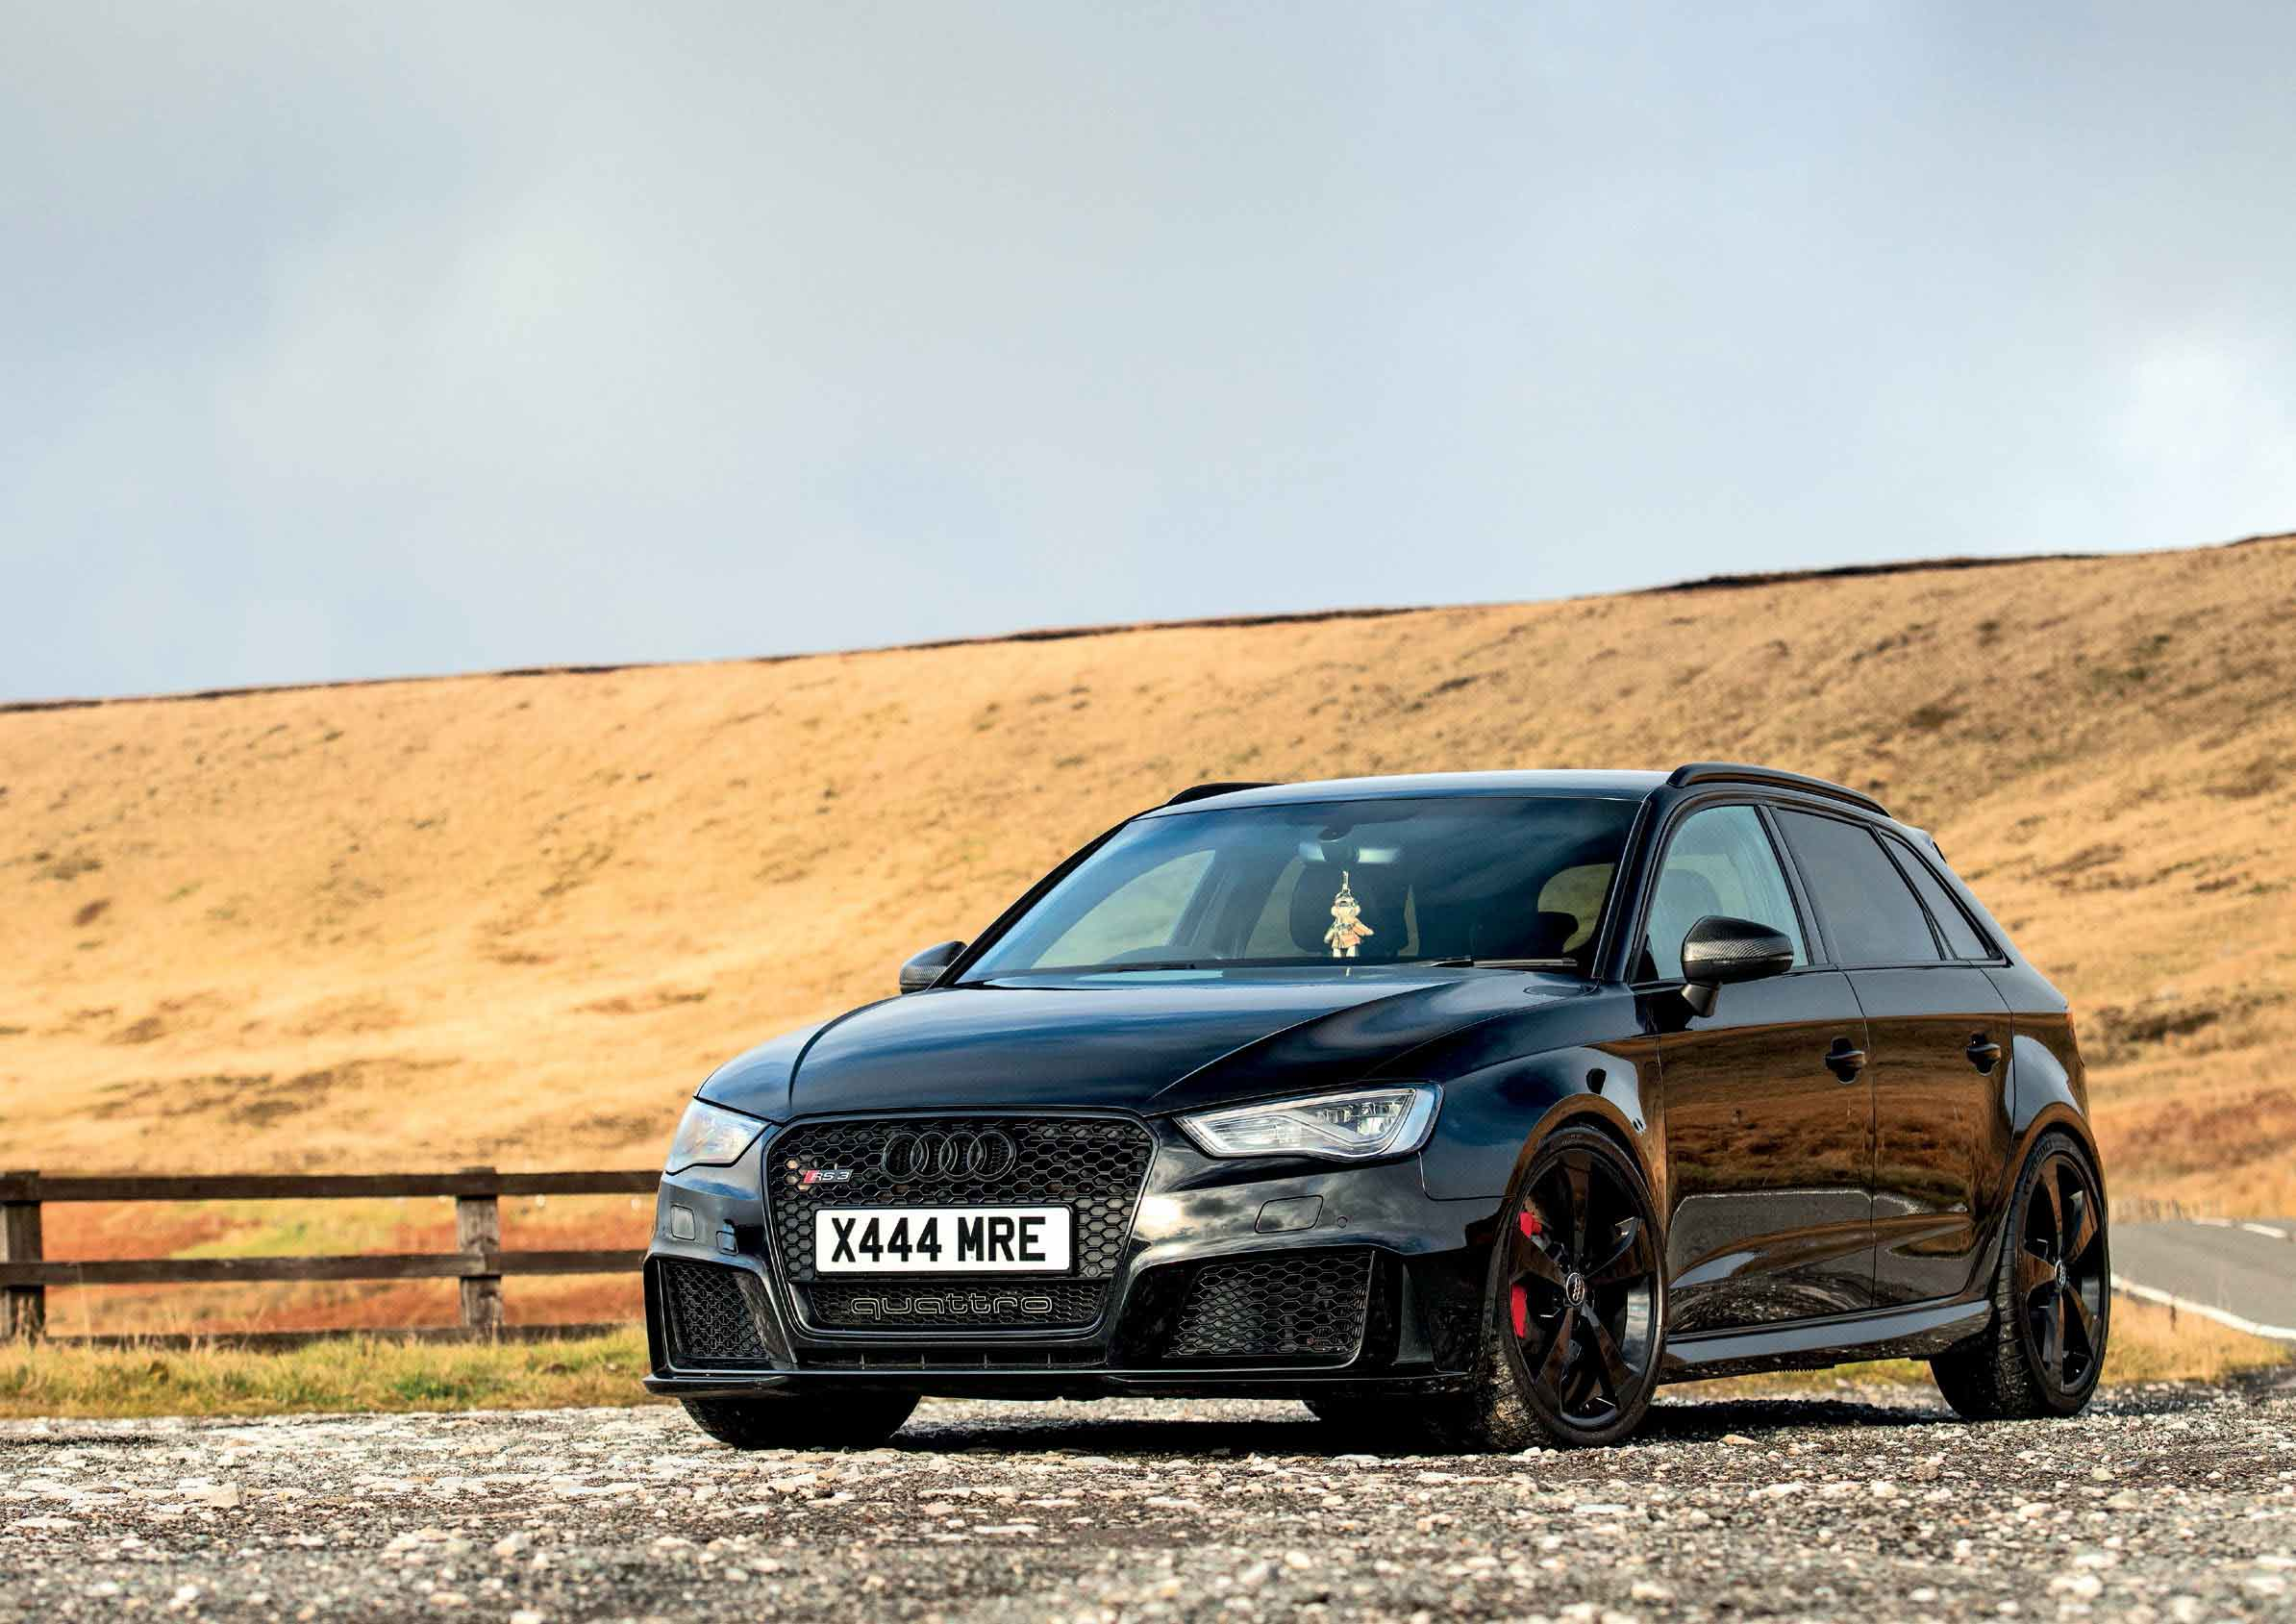 Apr Stage 1 Ecu Tune 470bhp Audi Rs3 Quattro Black Edition 8v